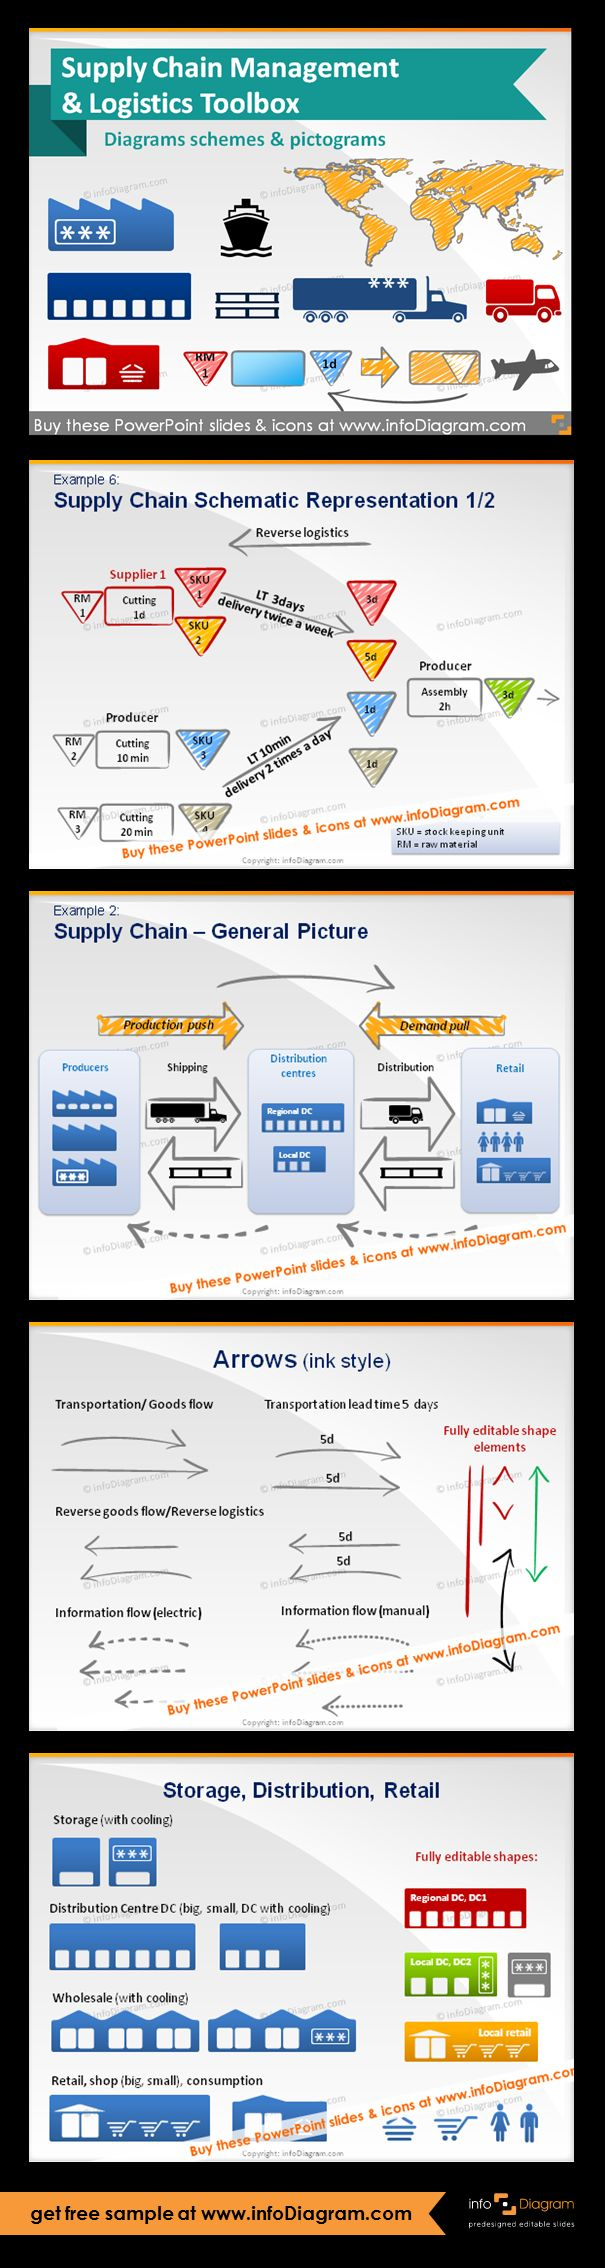 Supply Chain and Logistics schema diagrams & pictogram icons - editable graphical elements for PowerPoint. Fully adaptable vector shapes (color, filling, size). Supply Chain Schematic Representation with a supplier, two producers, reduction of WIP ( reverse logistics, SKU - stock keeping unit, RM - raw material, WIP - work in process). Supply Chain - general picture of related logistics. Handwritten arrow shapes for SCM flow diagrams. Pictograms of storage and storage with cooling…